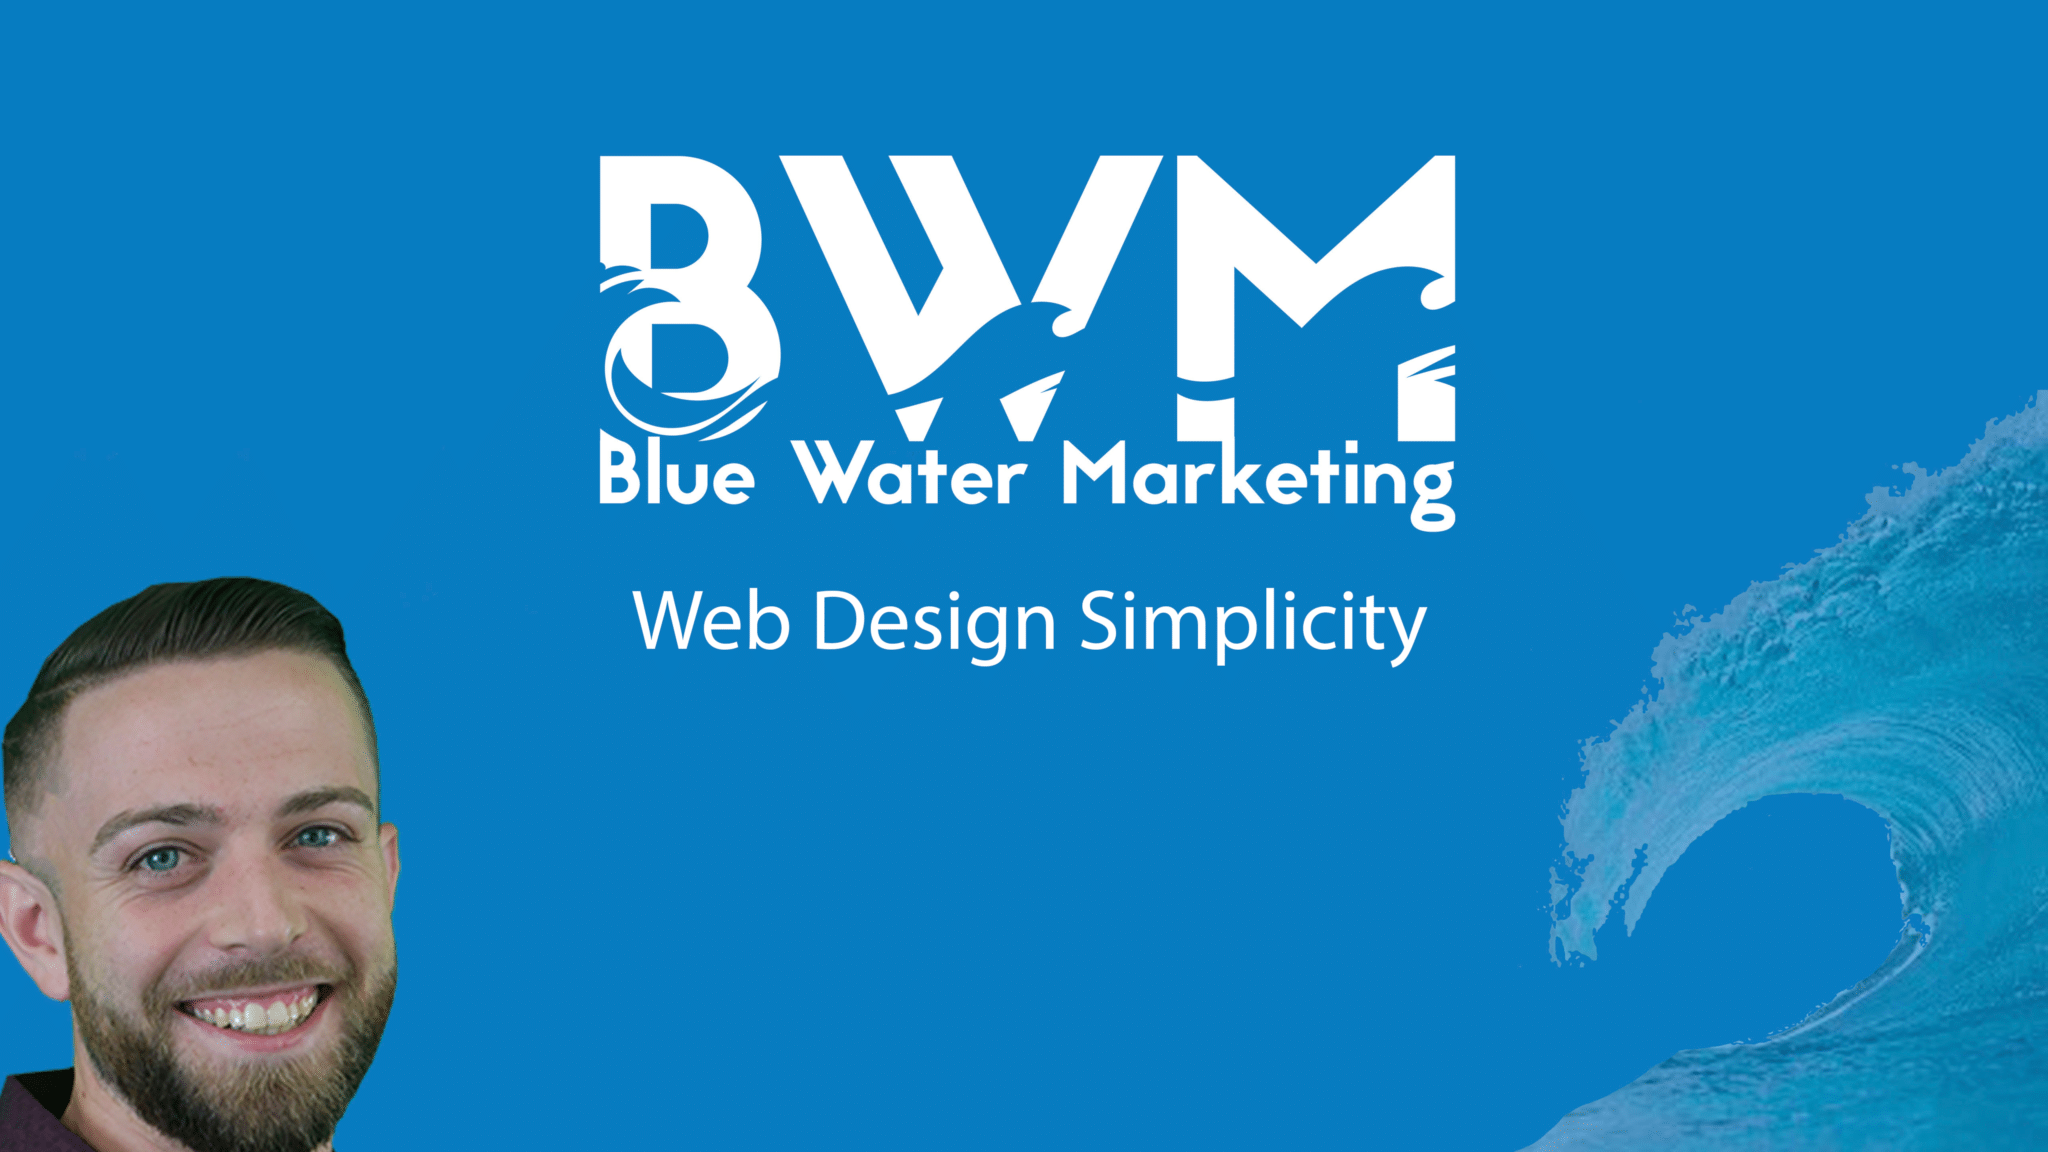 Blue Water Marketing Web Design Simplicity